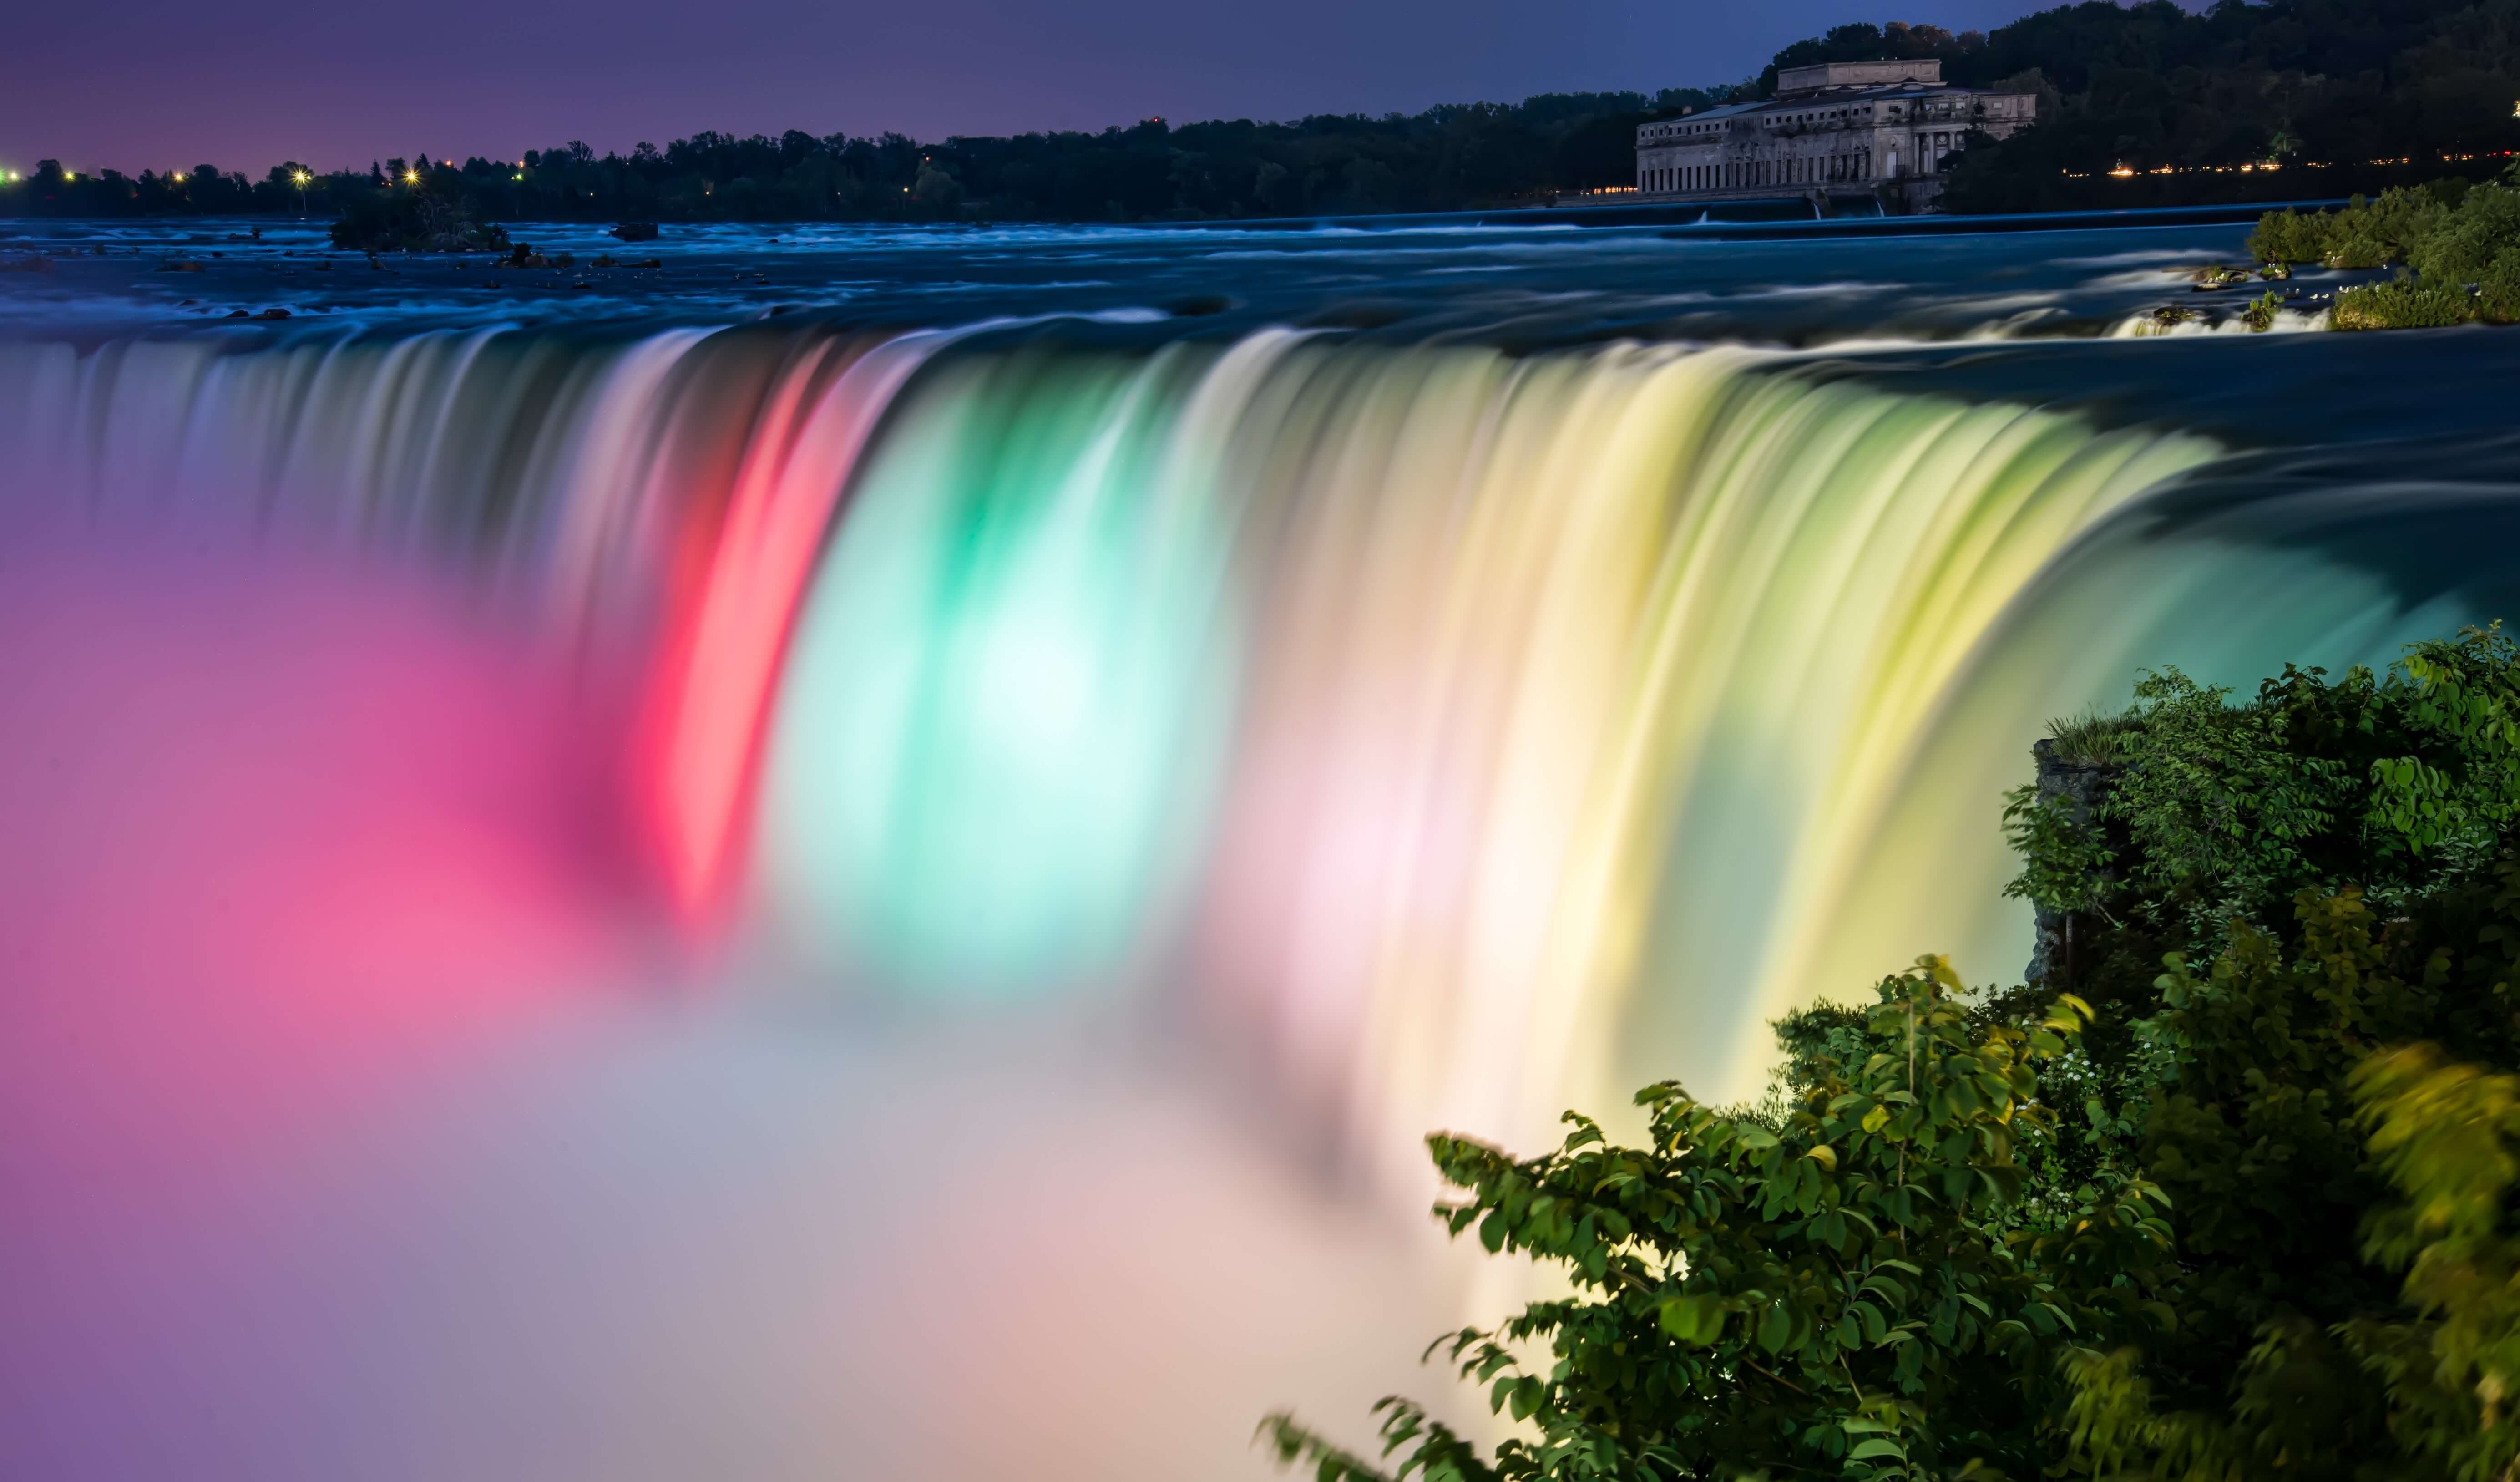 colorful waterfall at night. - moving water iPhone